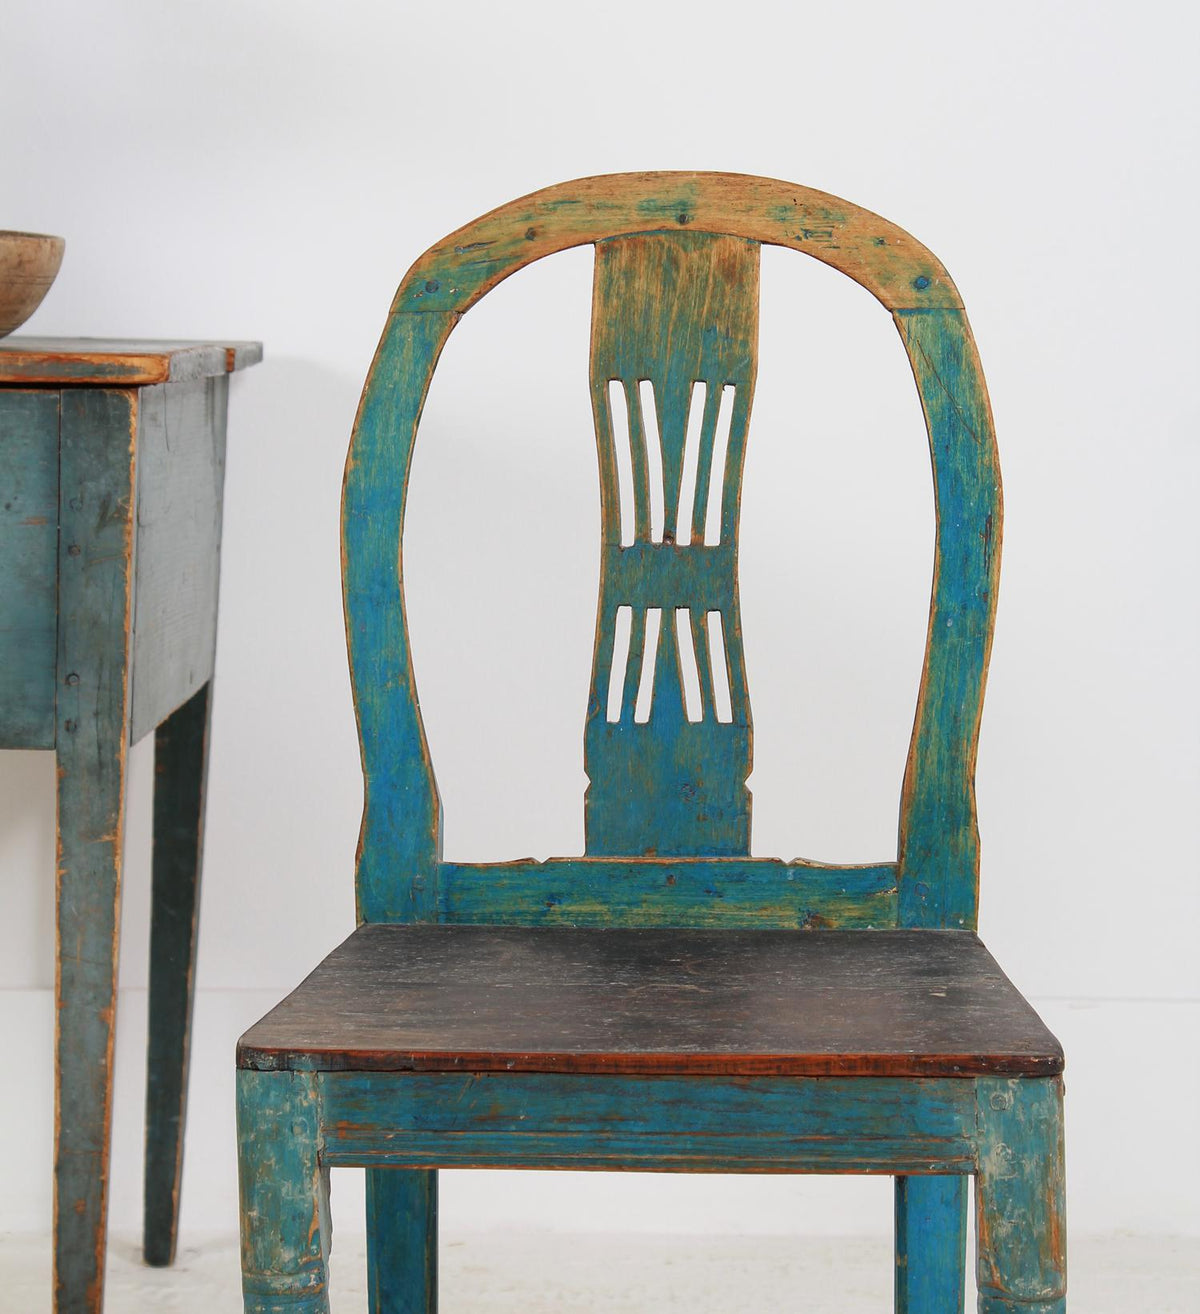 DELIGHTFUL SWEDISH PROVINCIAL SIDE CHAIR IN ORIGINAL BLUE PATINA